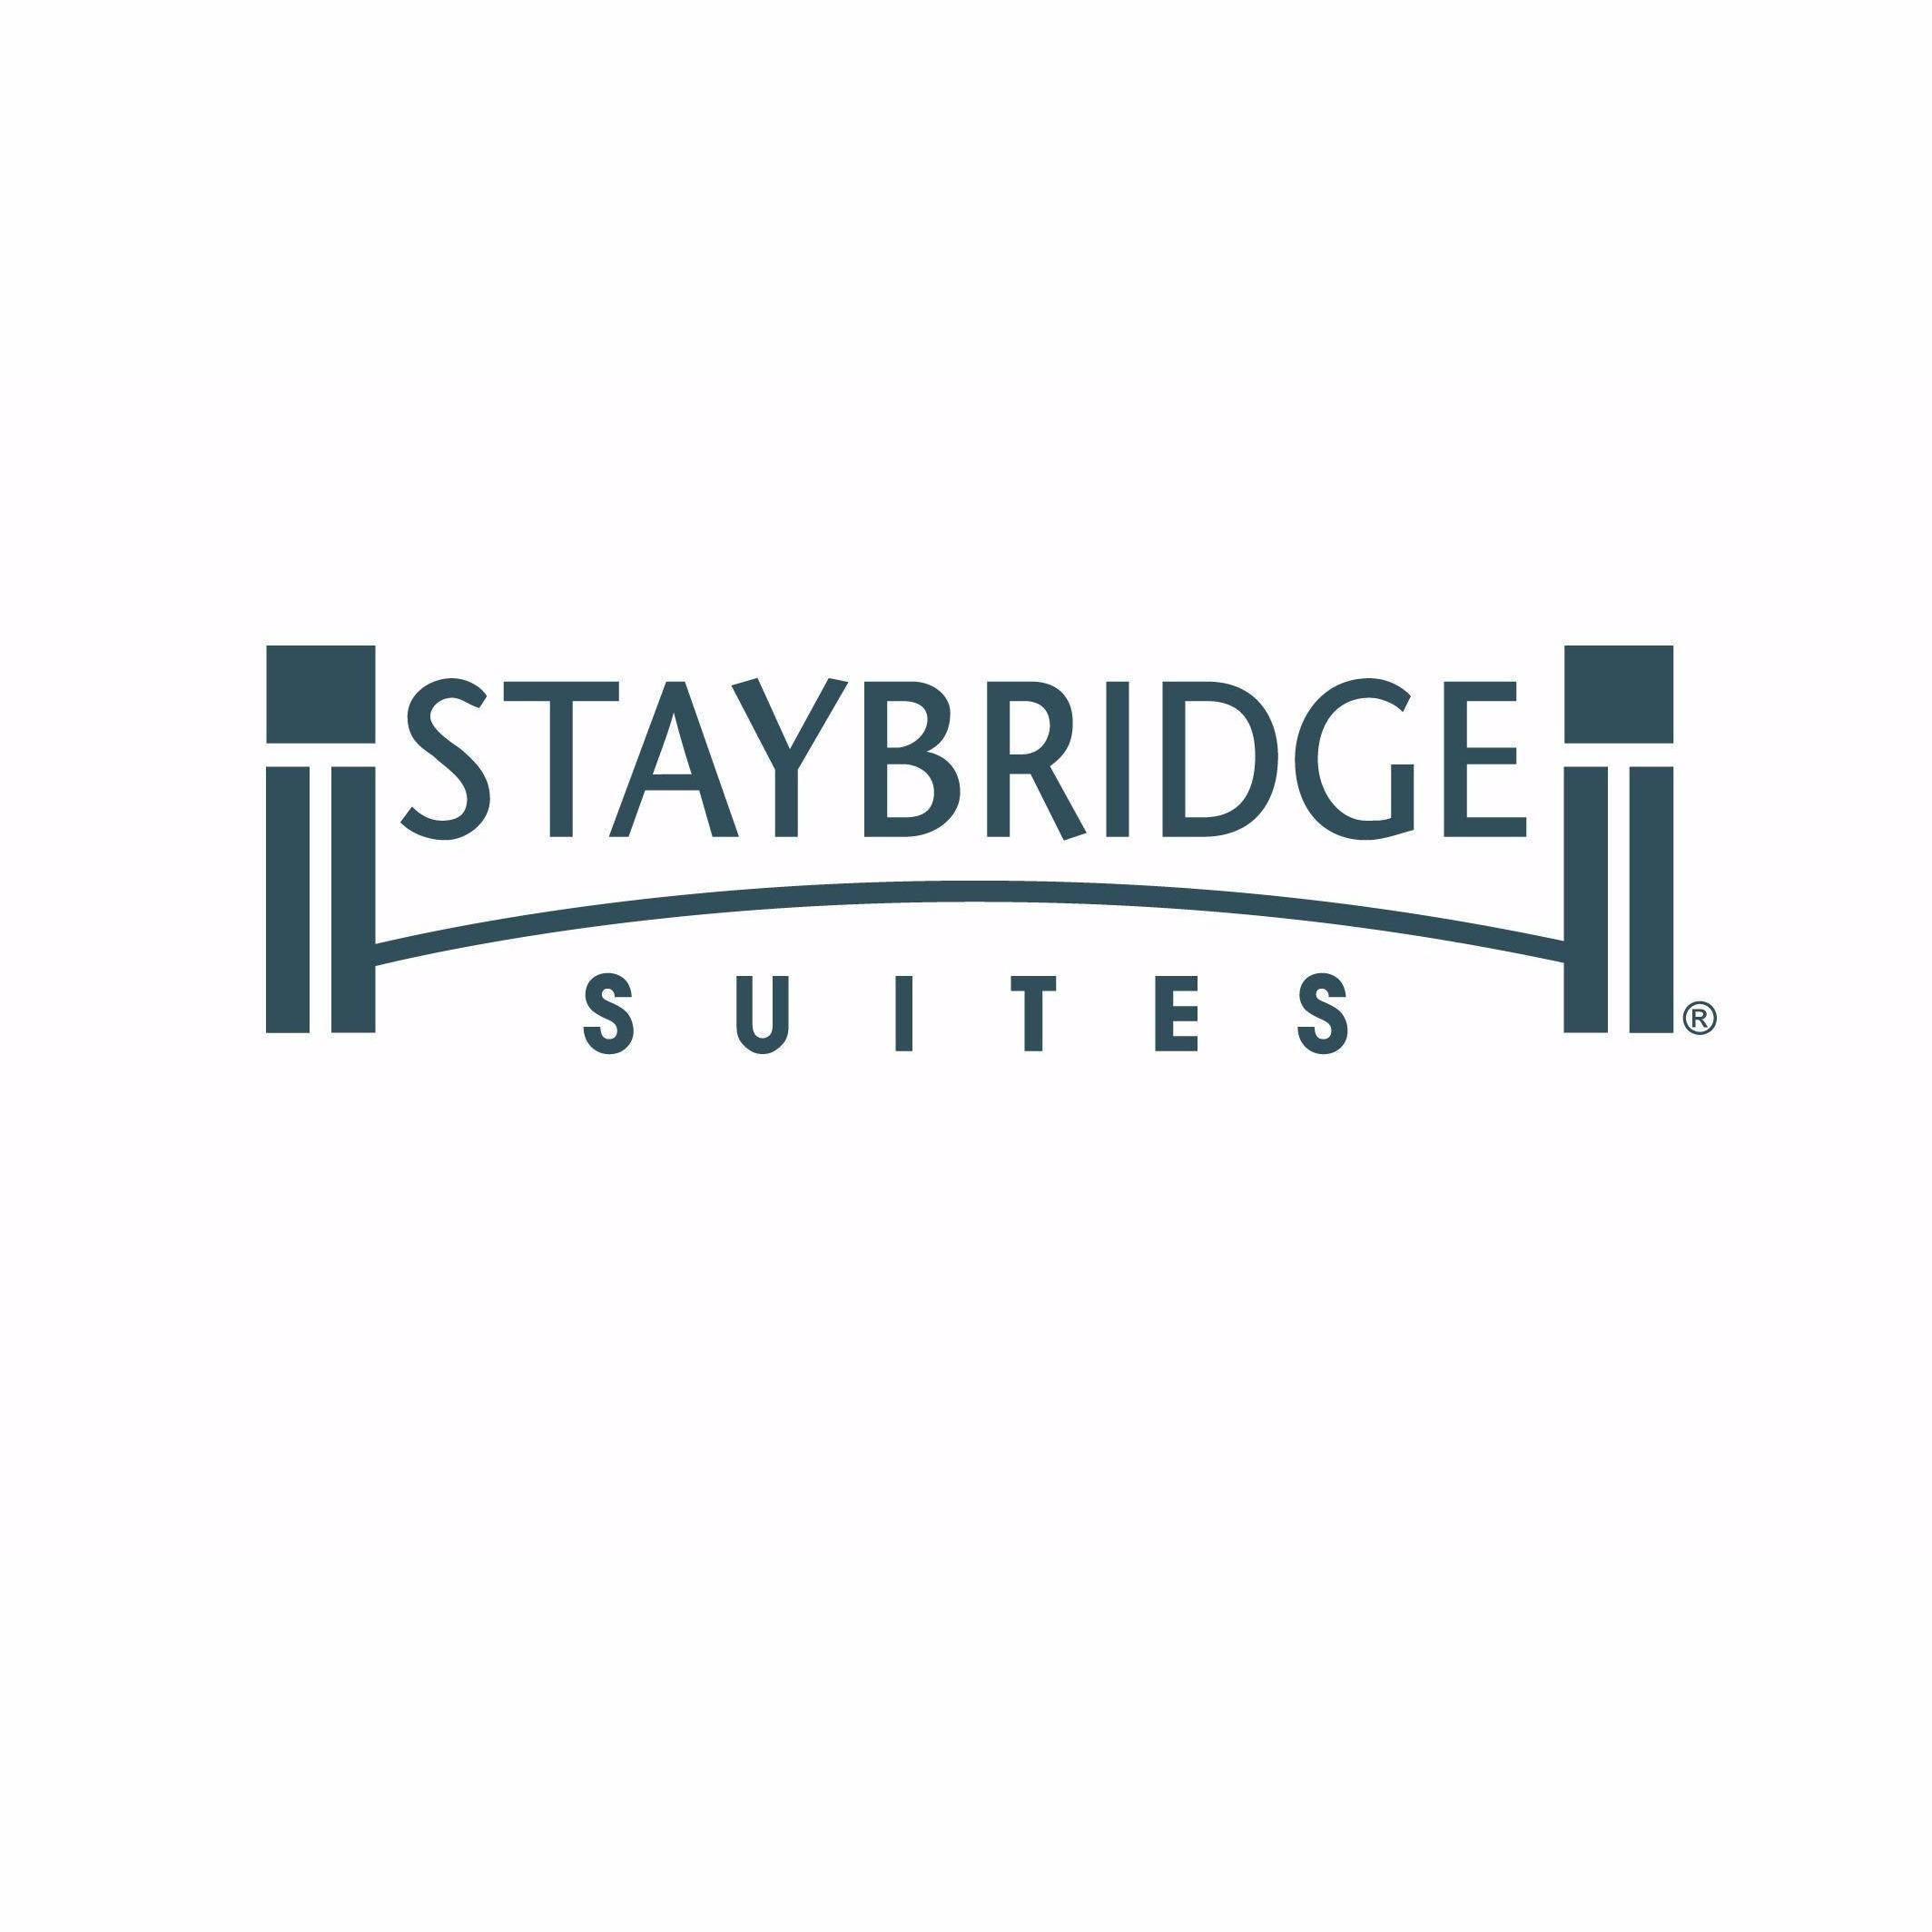 Staybridge Suites Benton Harbor St. Joseph